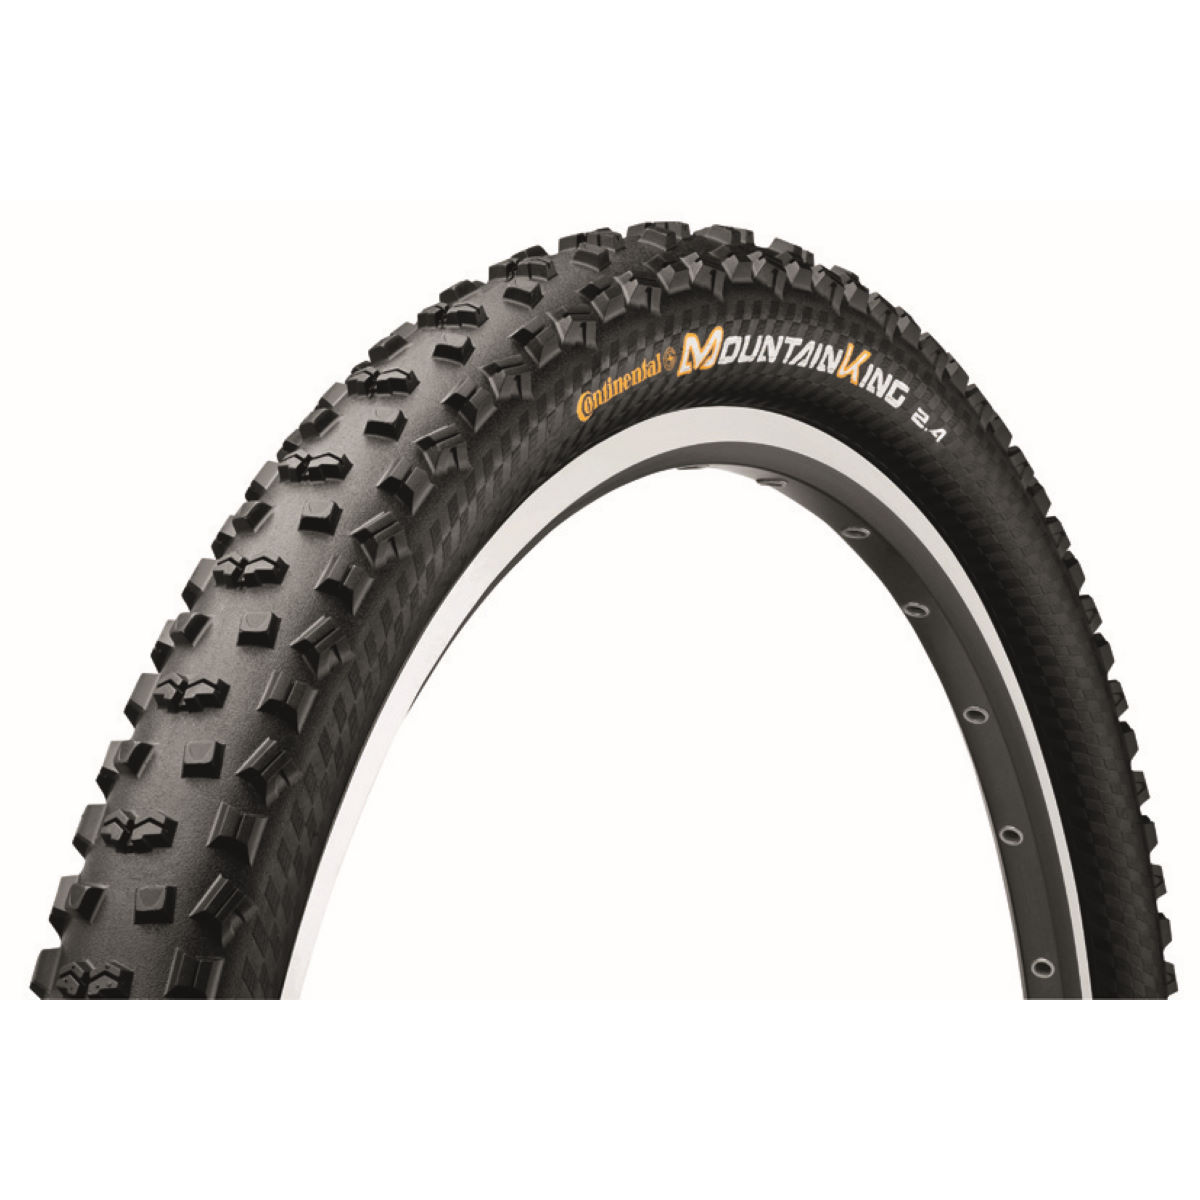 Pneu VTT Continental Mountain King II - 2.2 29'' Noir Pneus